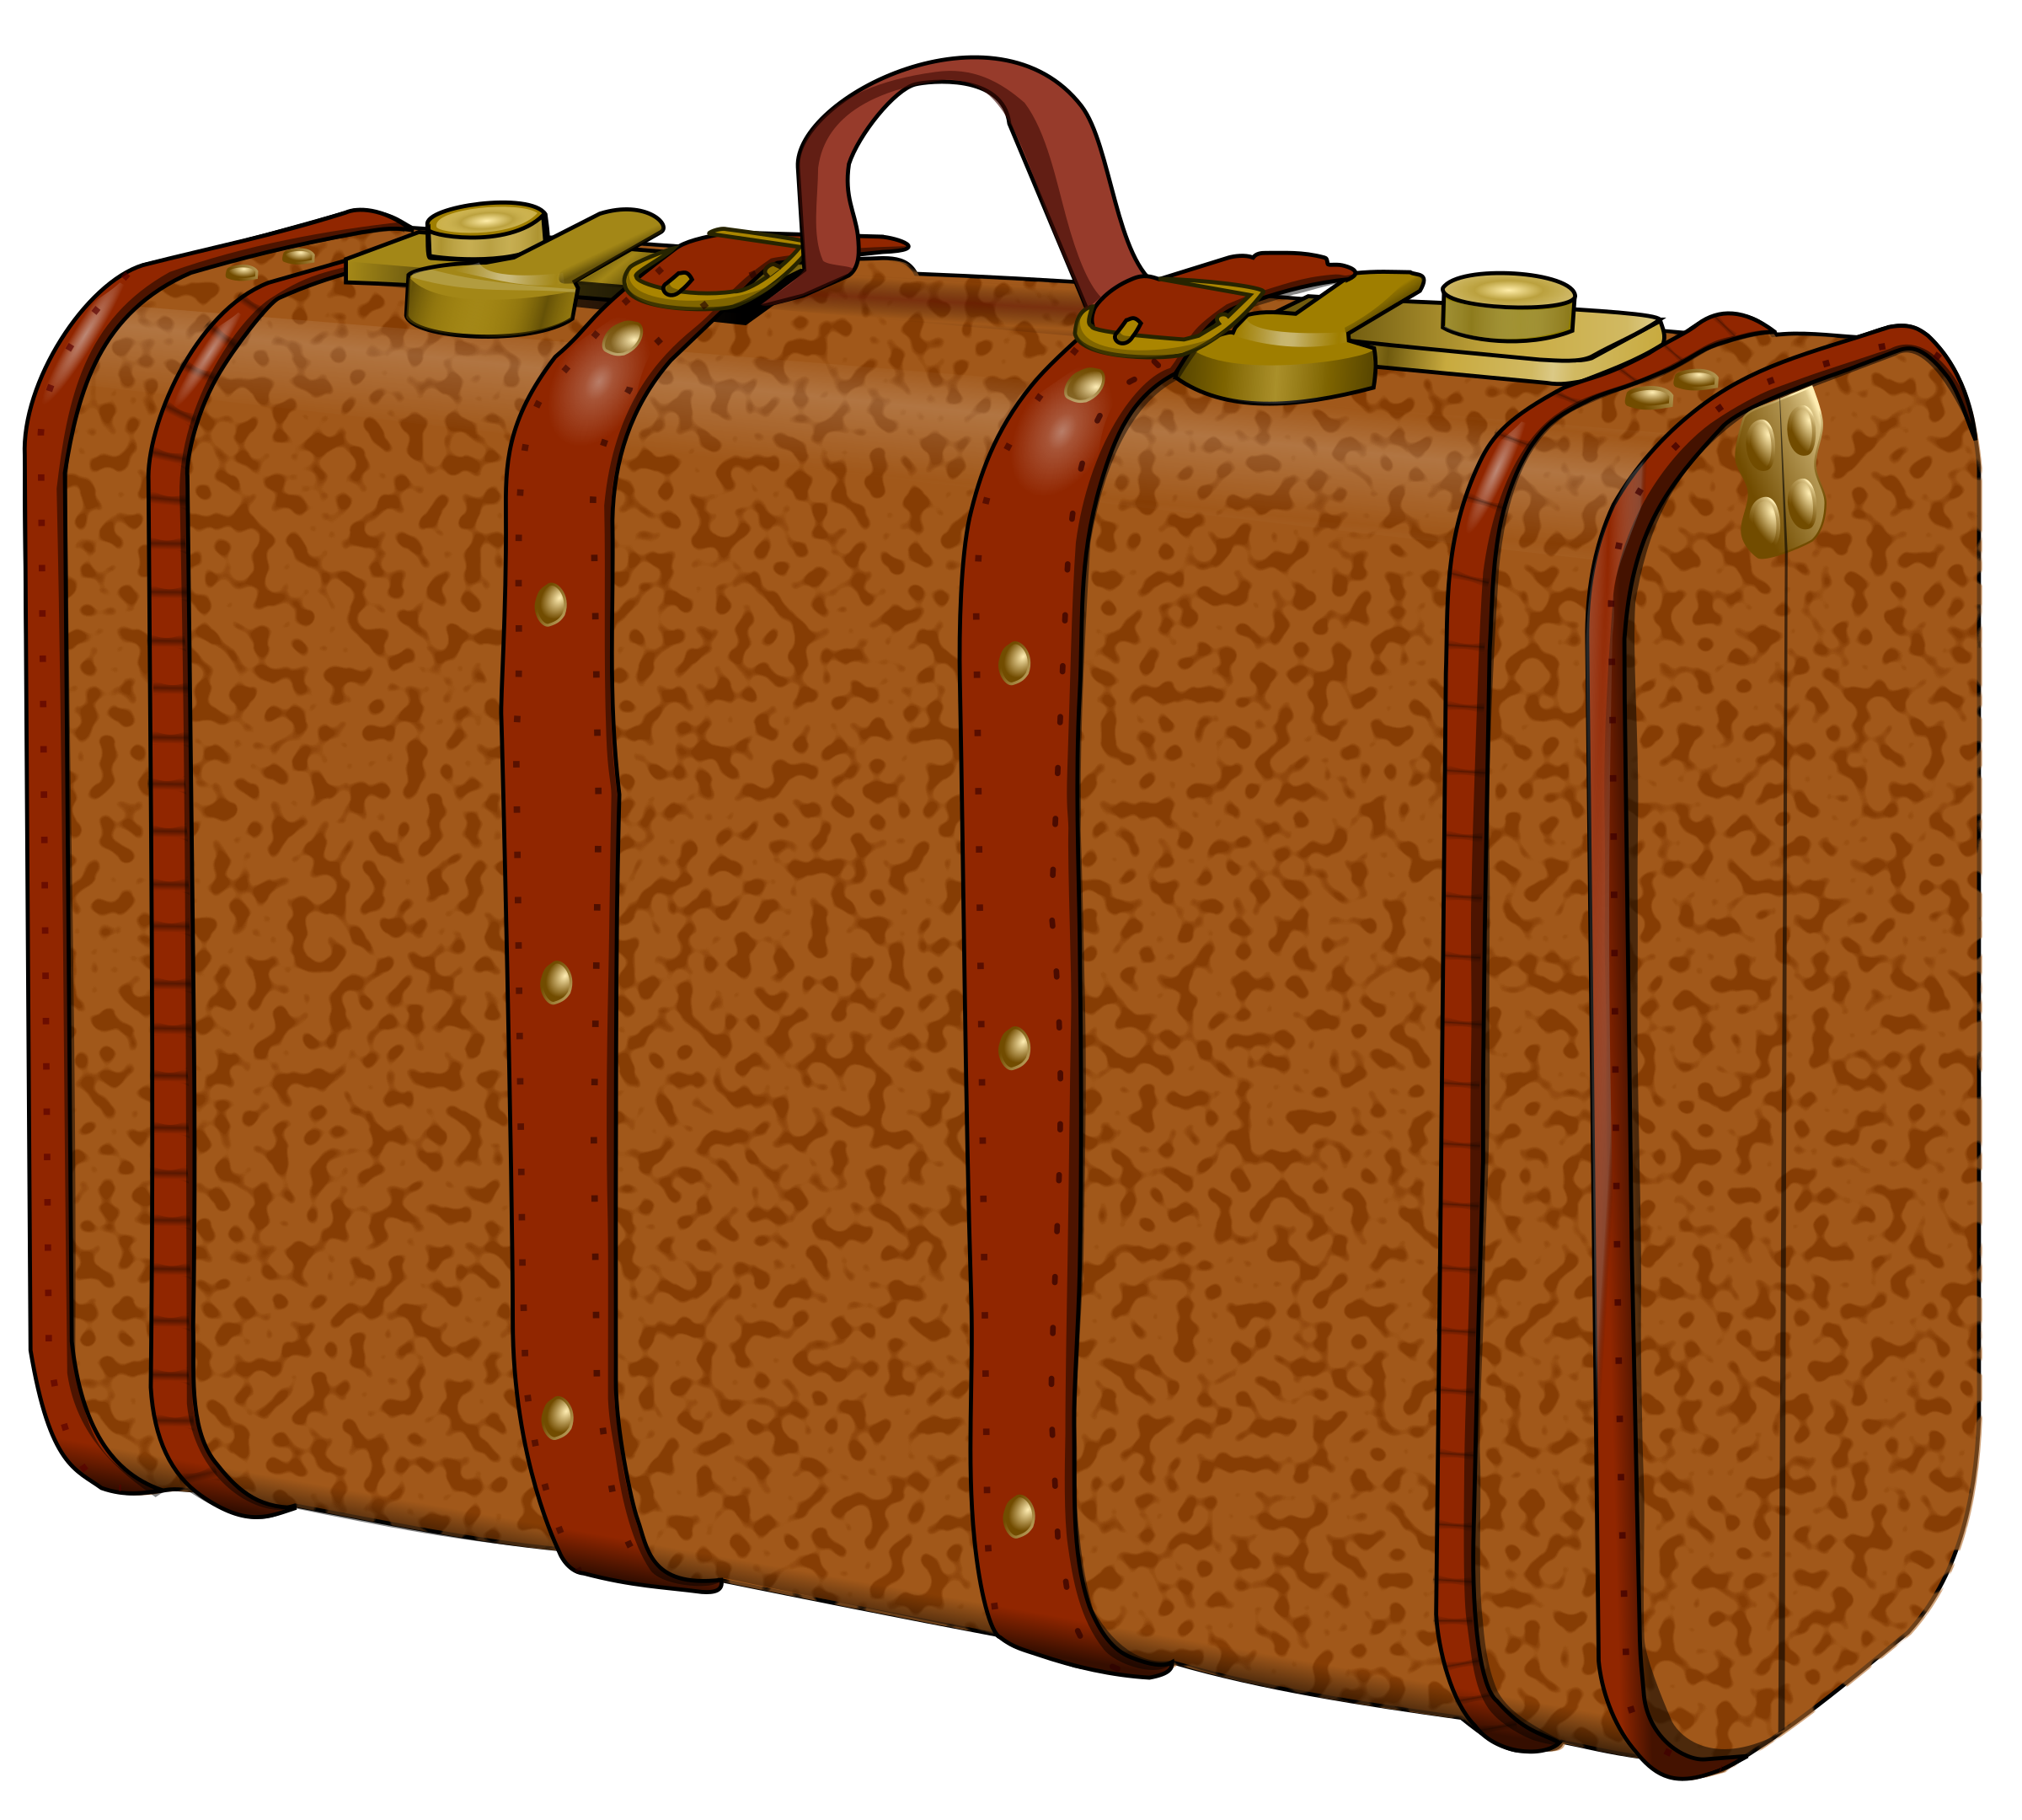 Cartoon briefcase png. Suitcase with stains icons